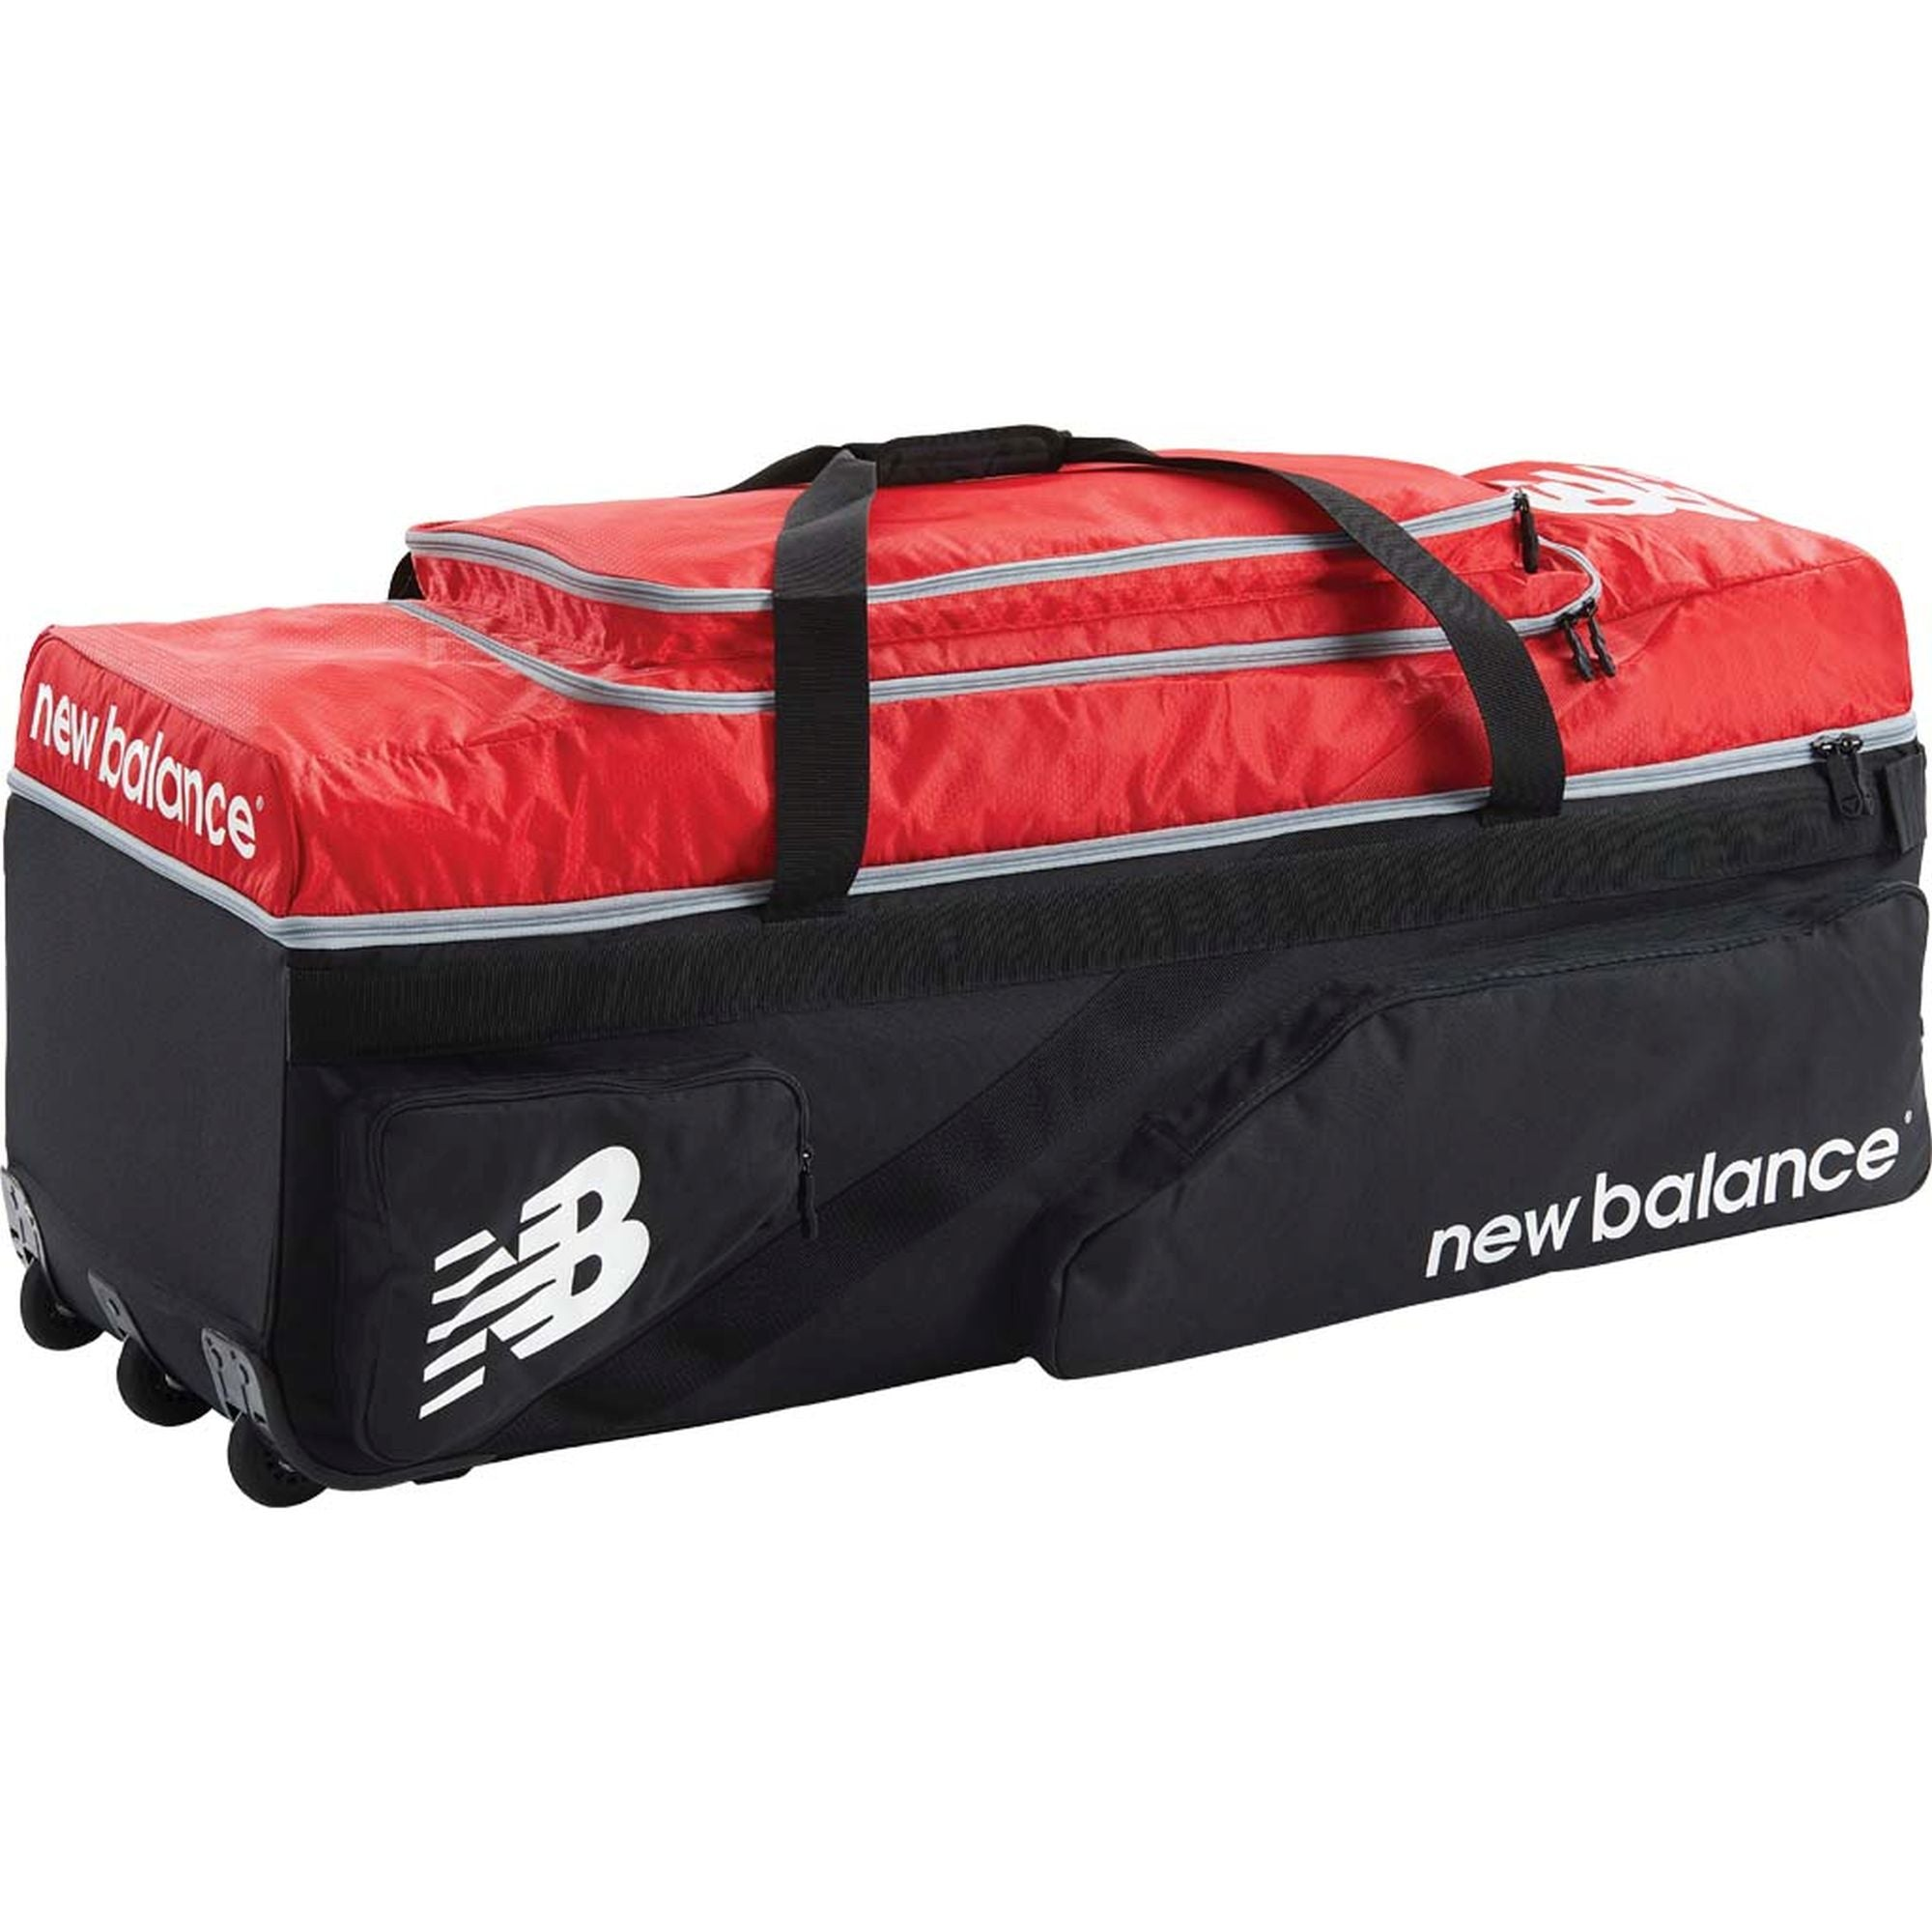 new balance cricket bag